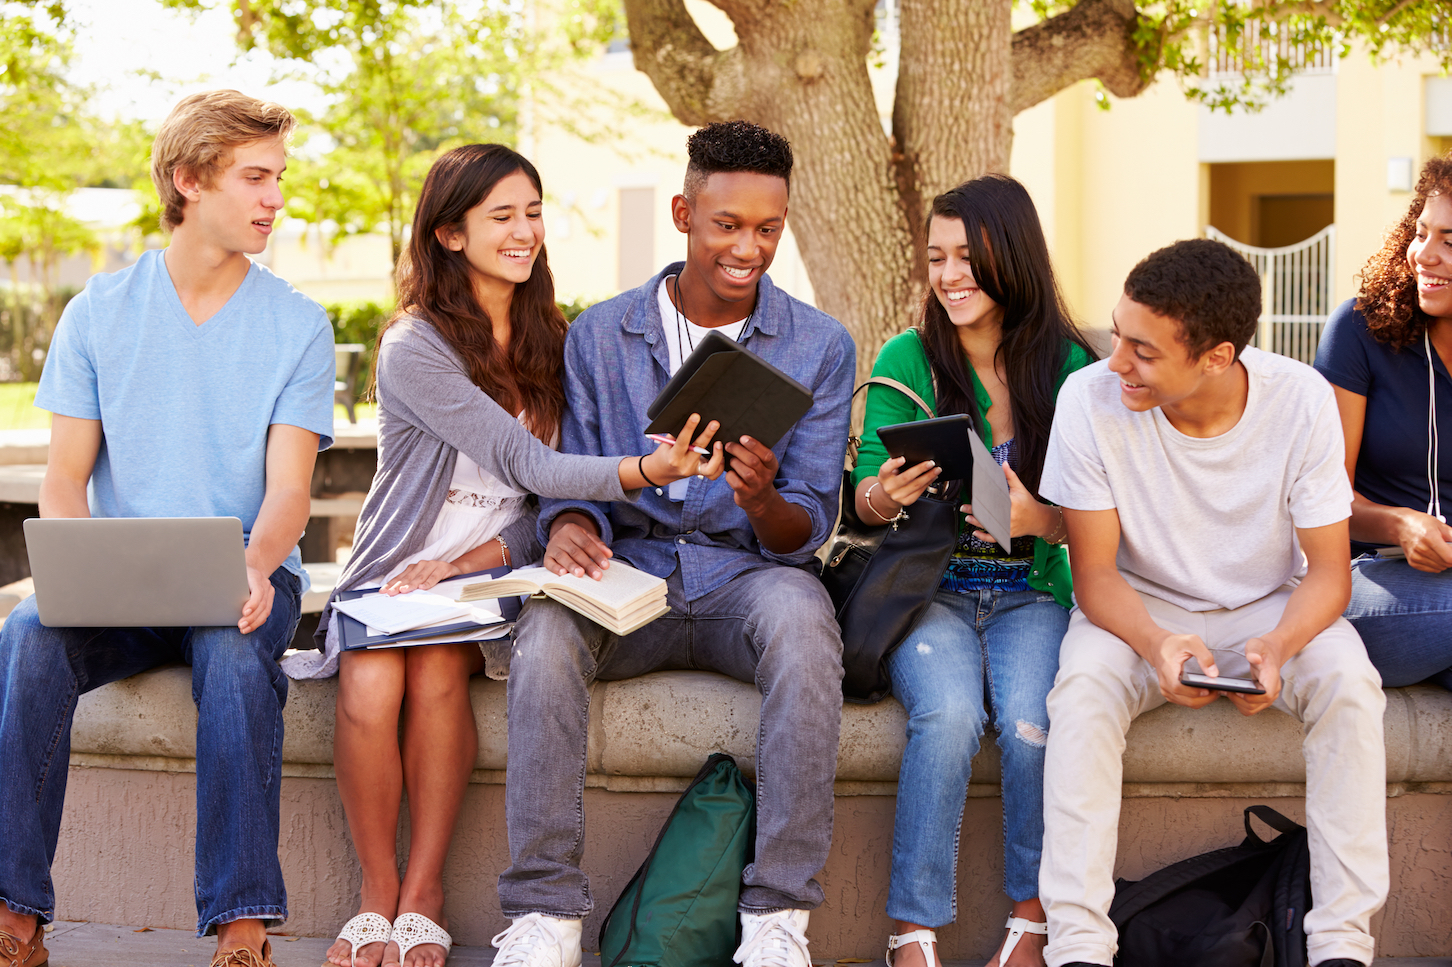 A study from the American Psychological Association is reporting that high school behavior is a strong predictor of success later in life.